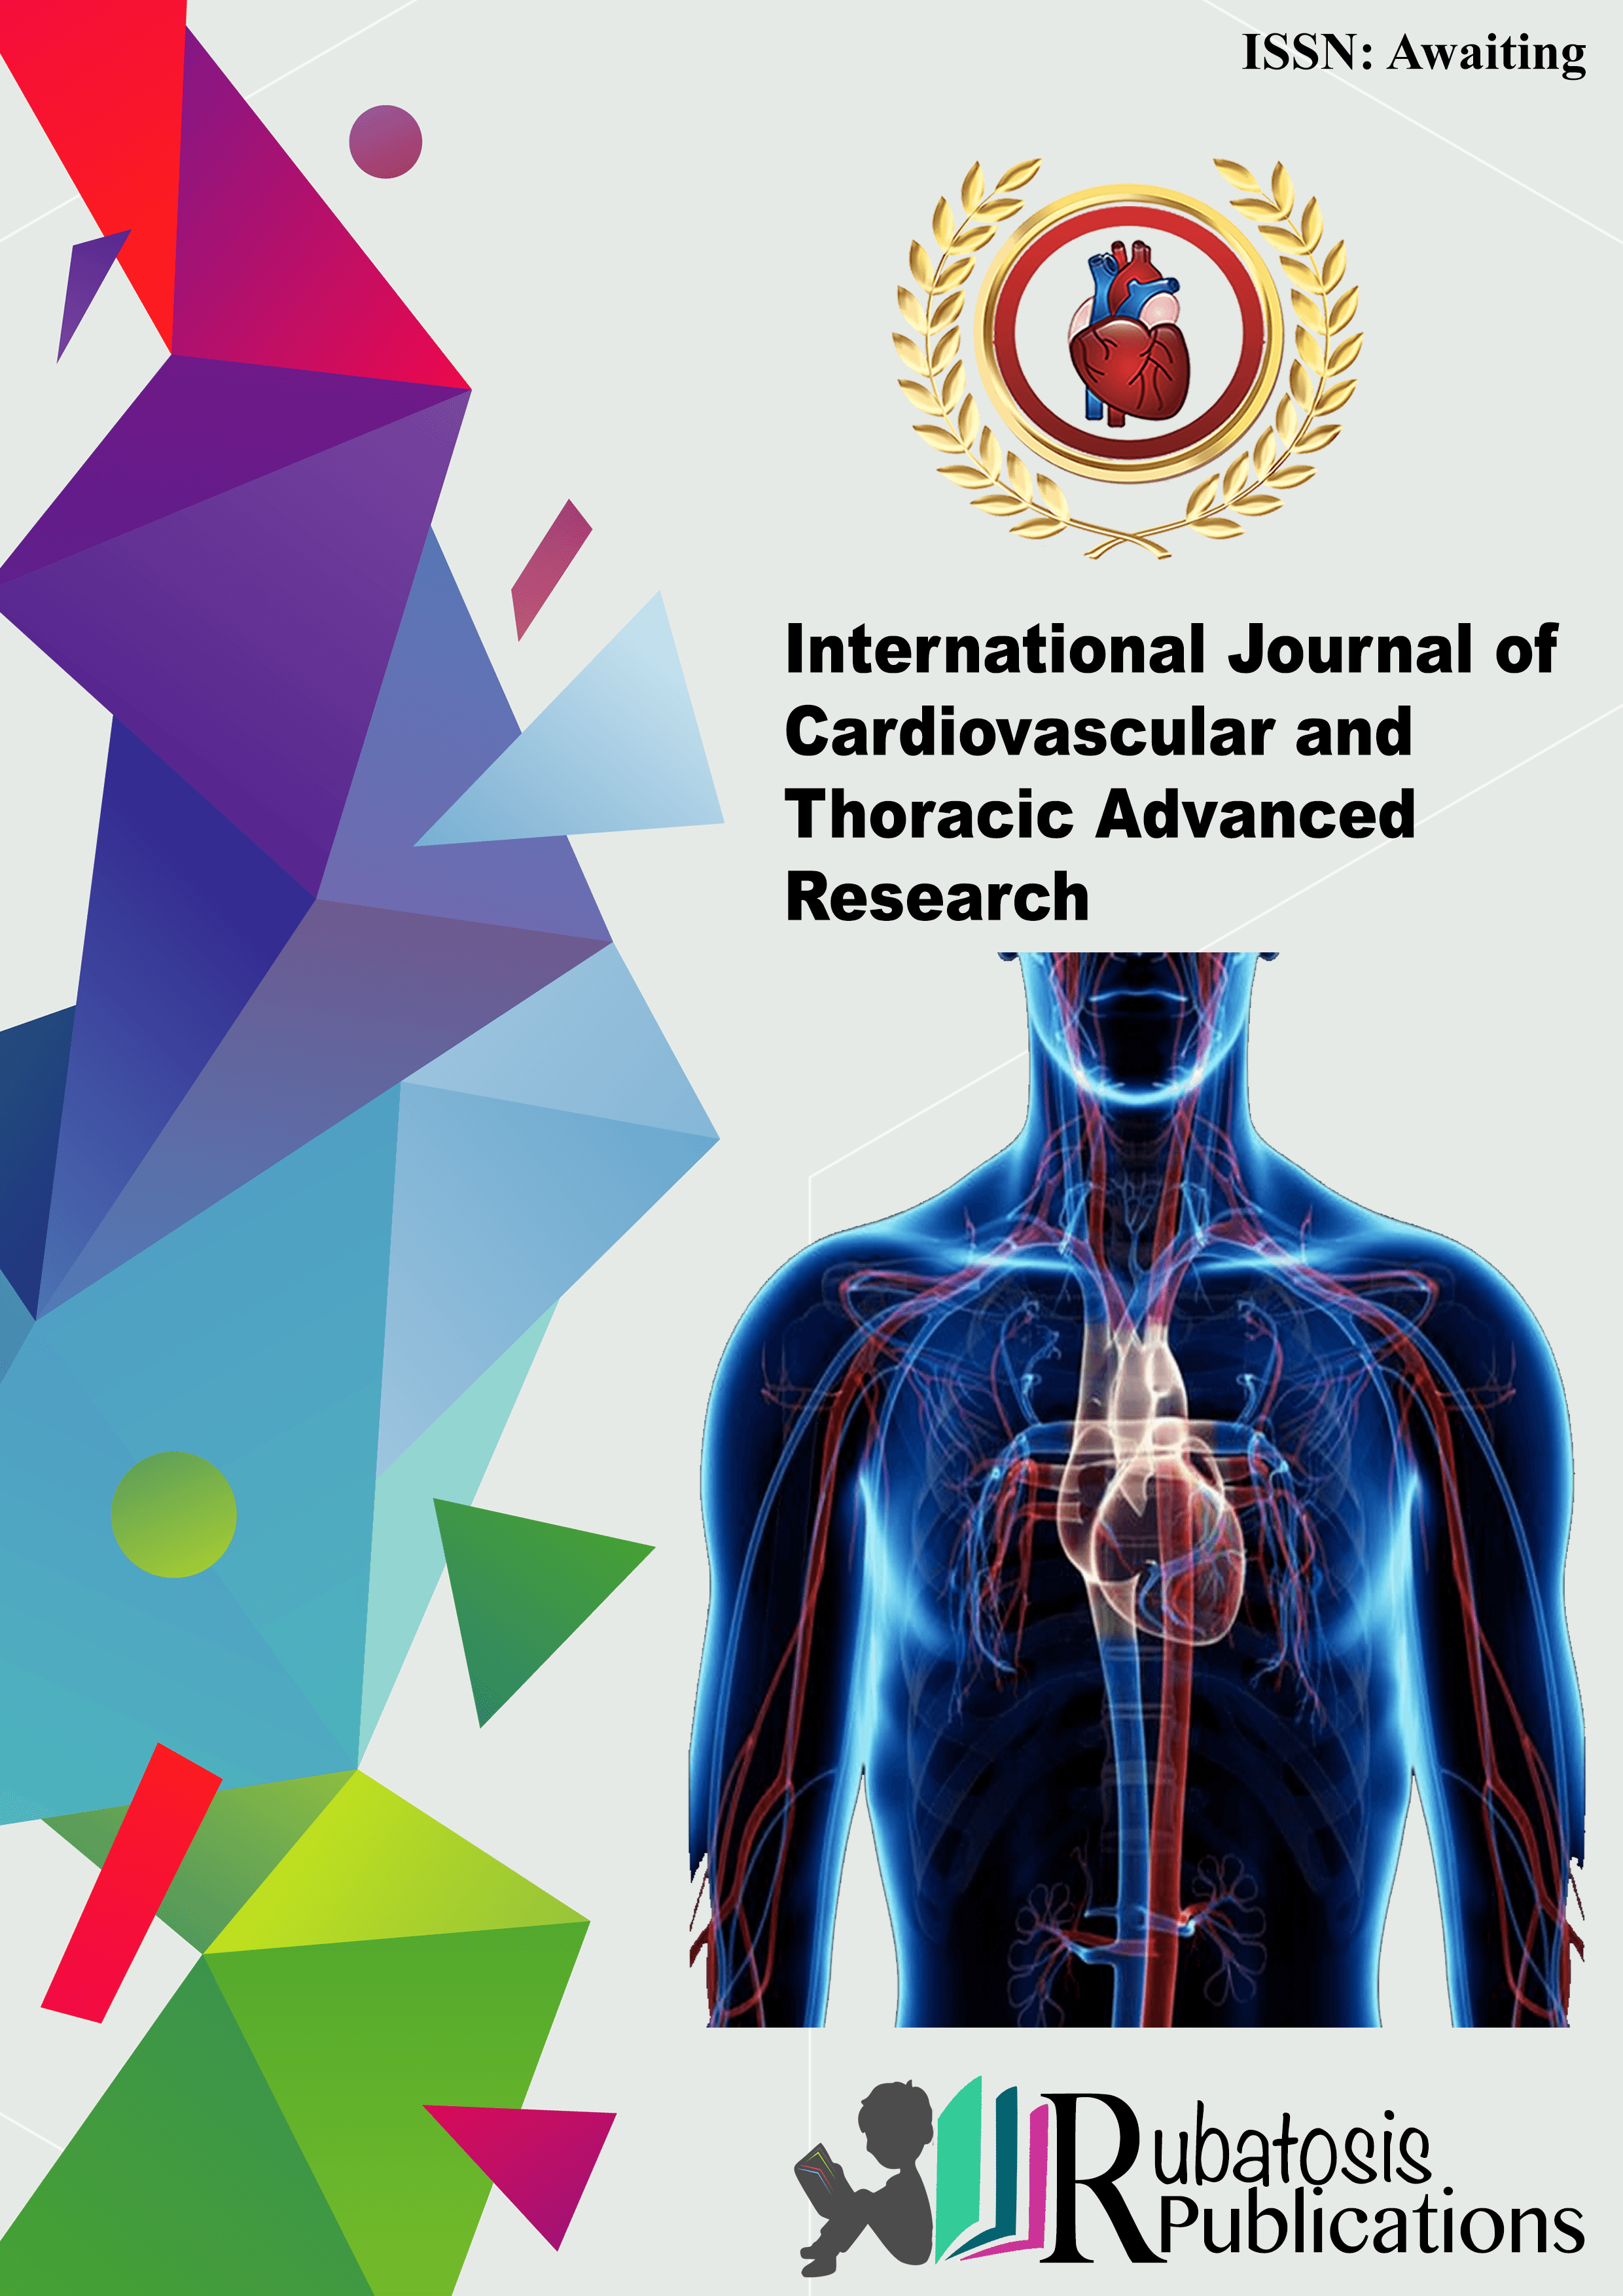 International Journal of Cardiovascular and Thoracic Advanced Research